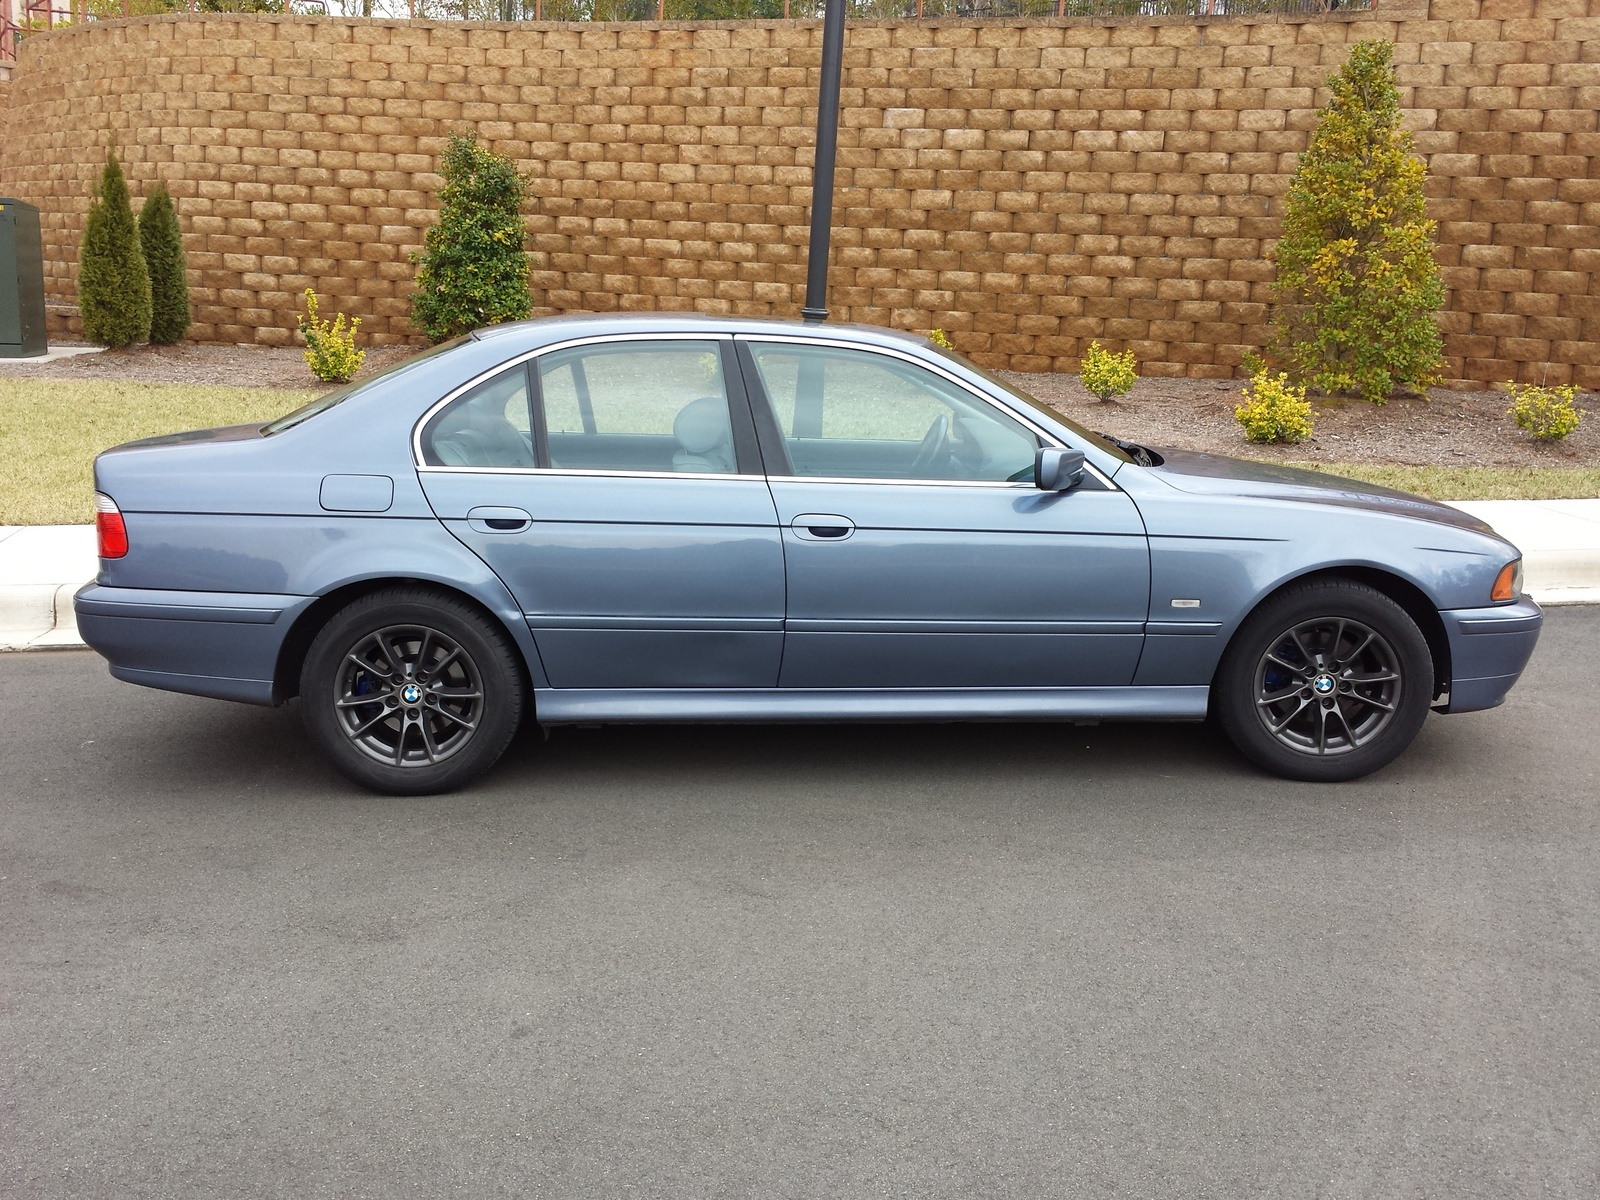 BMW 5 series 530xd 2003 photo - 8